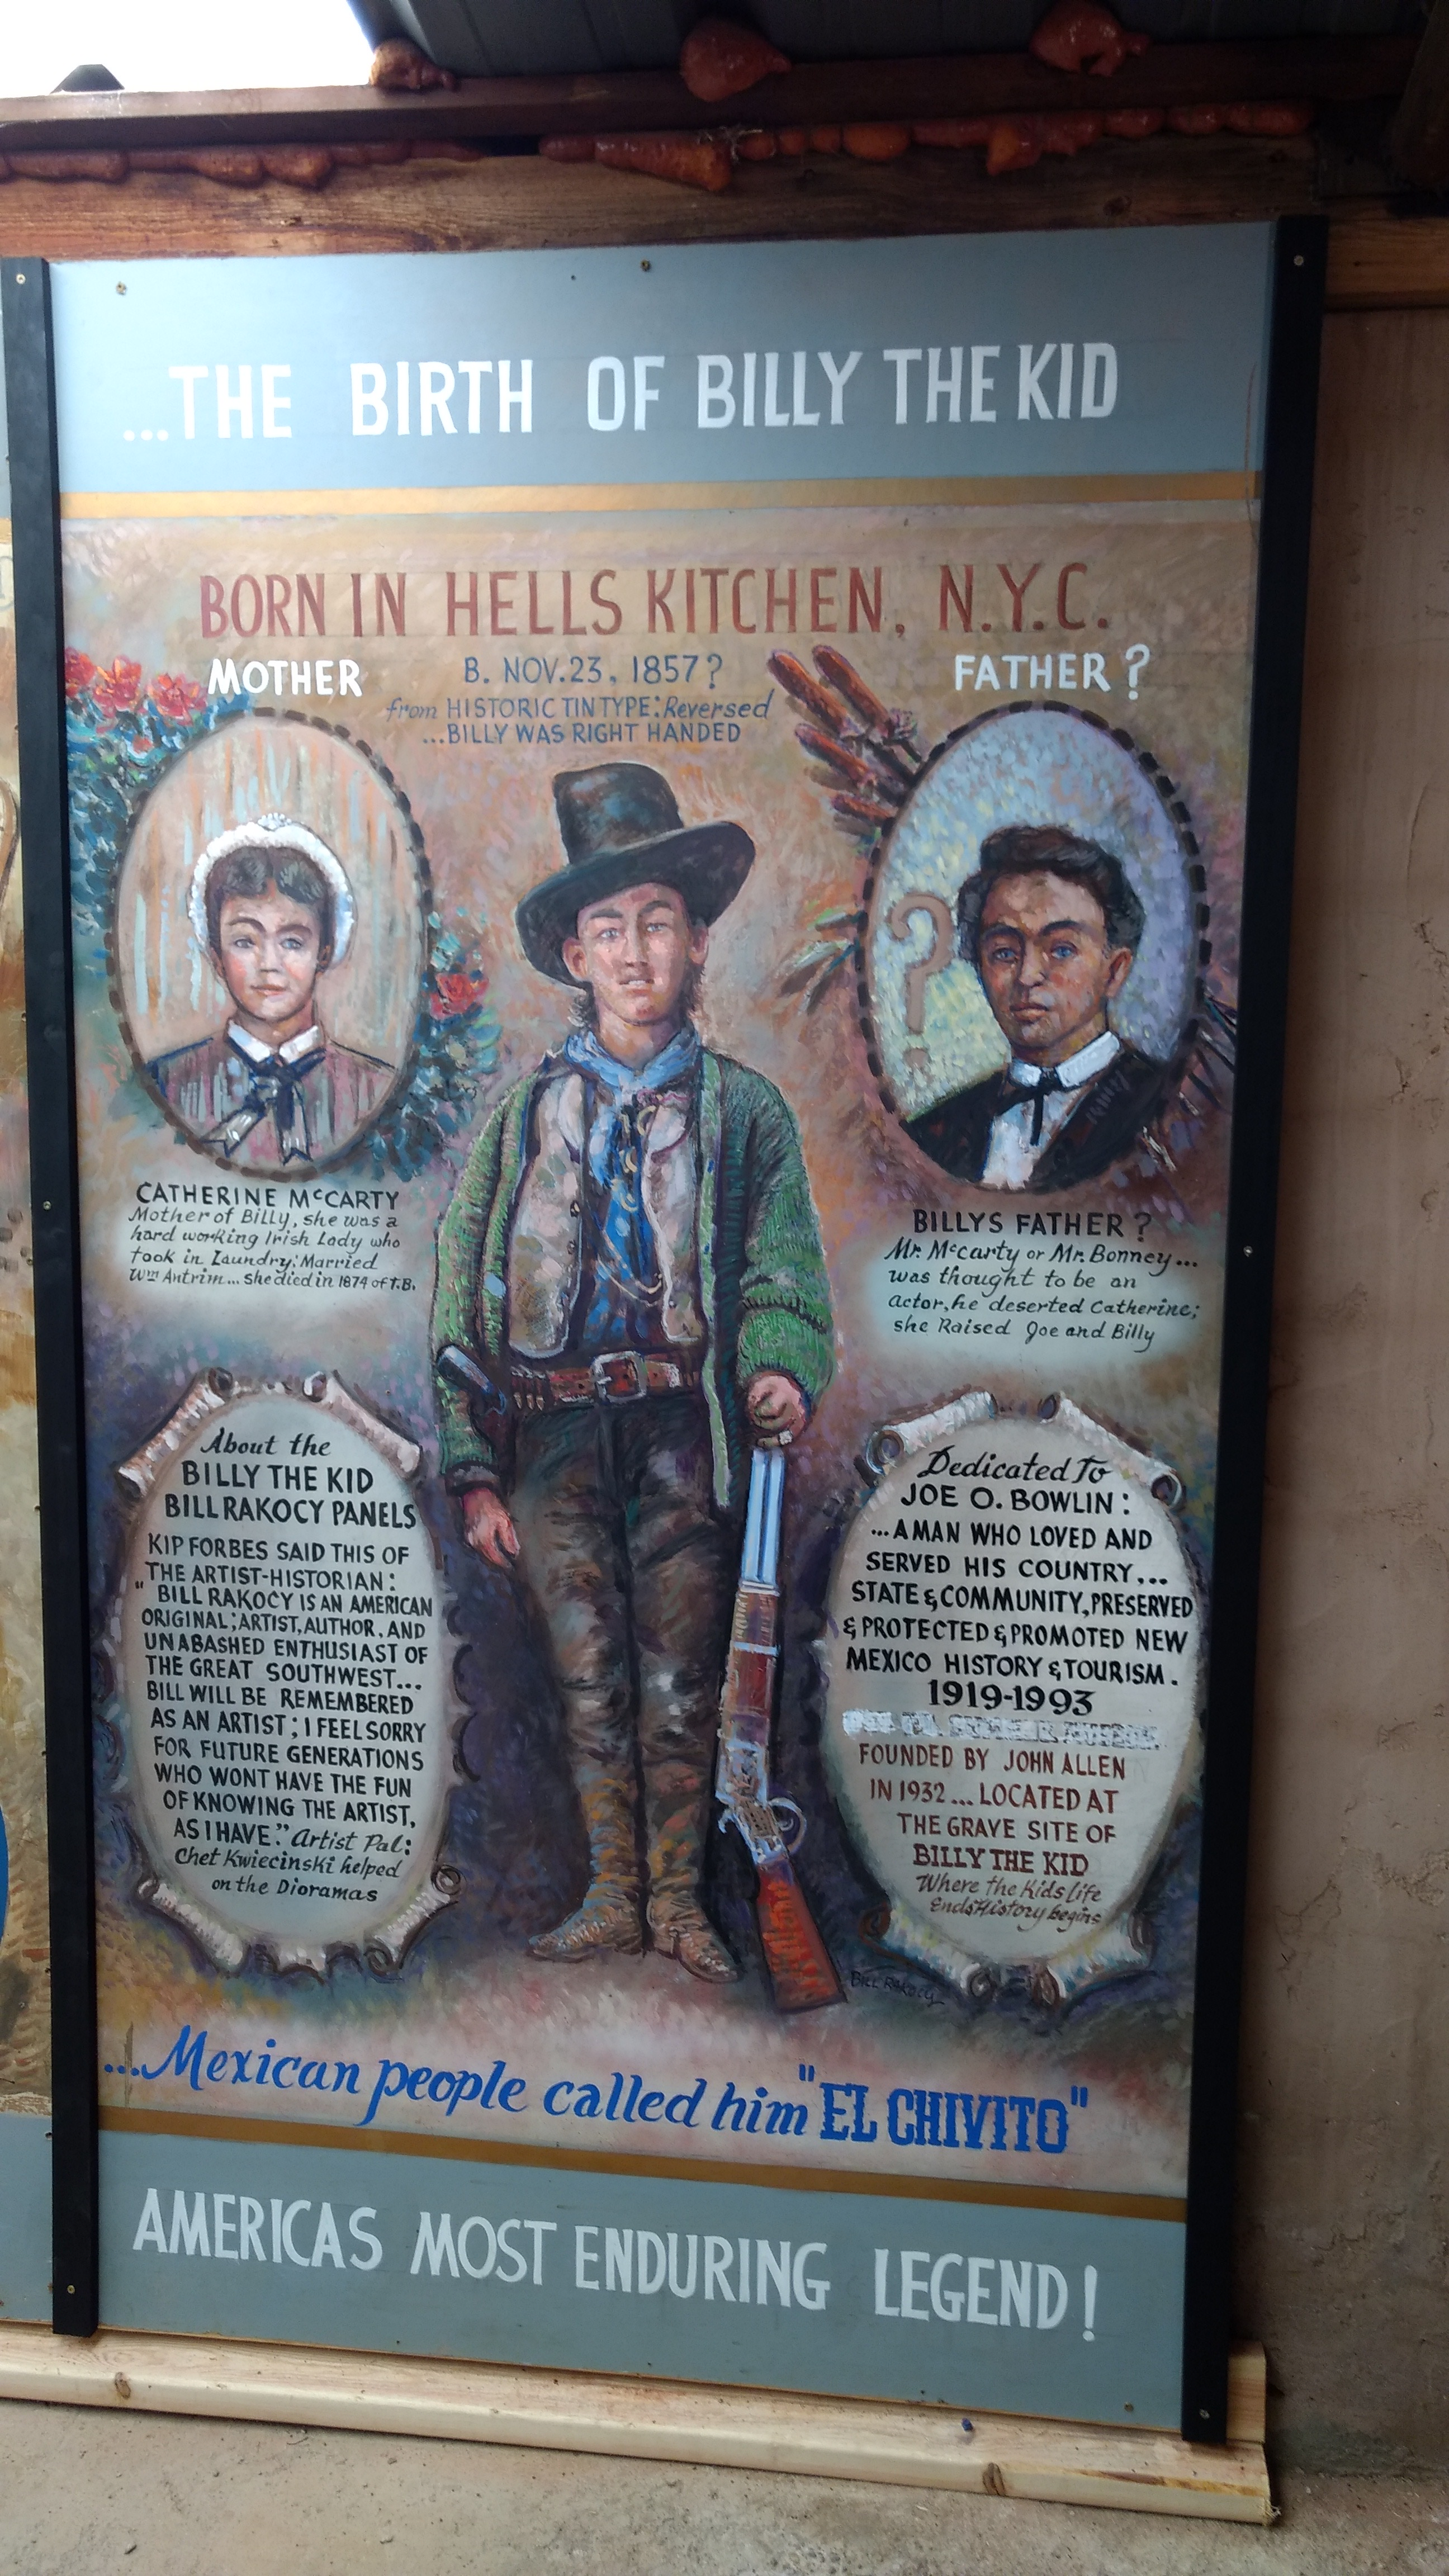 The Birth of Billy the Kid, a.k.a., Henry McCarty